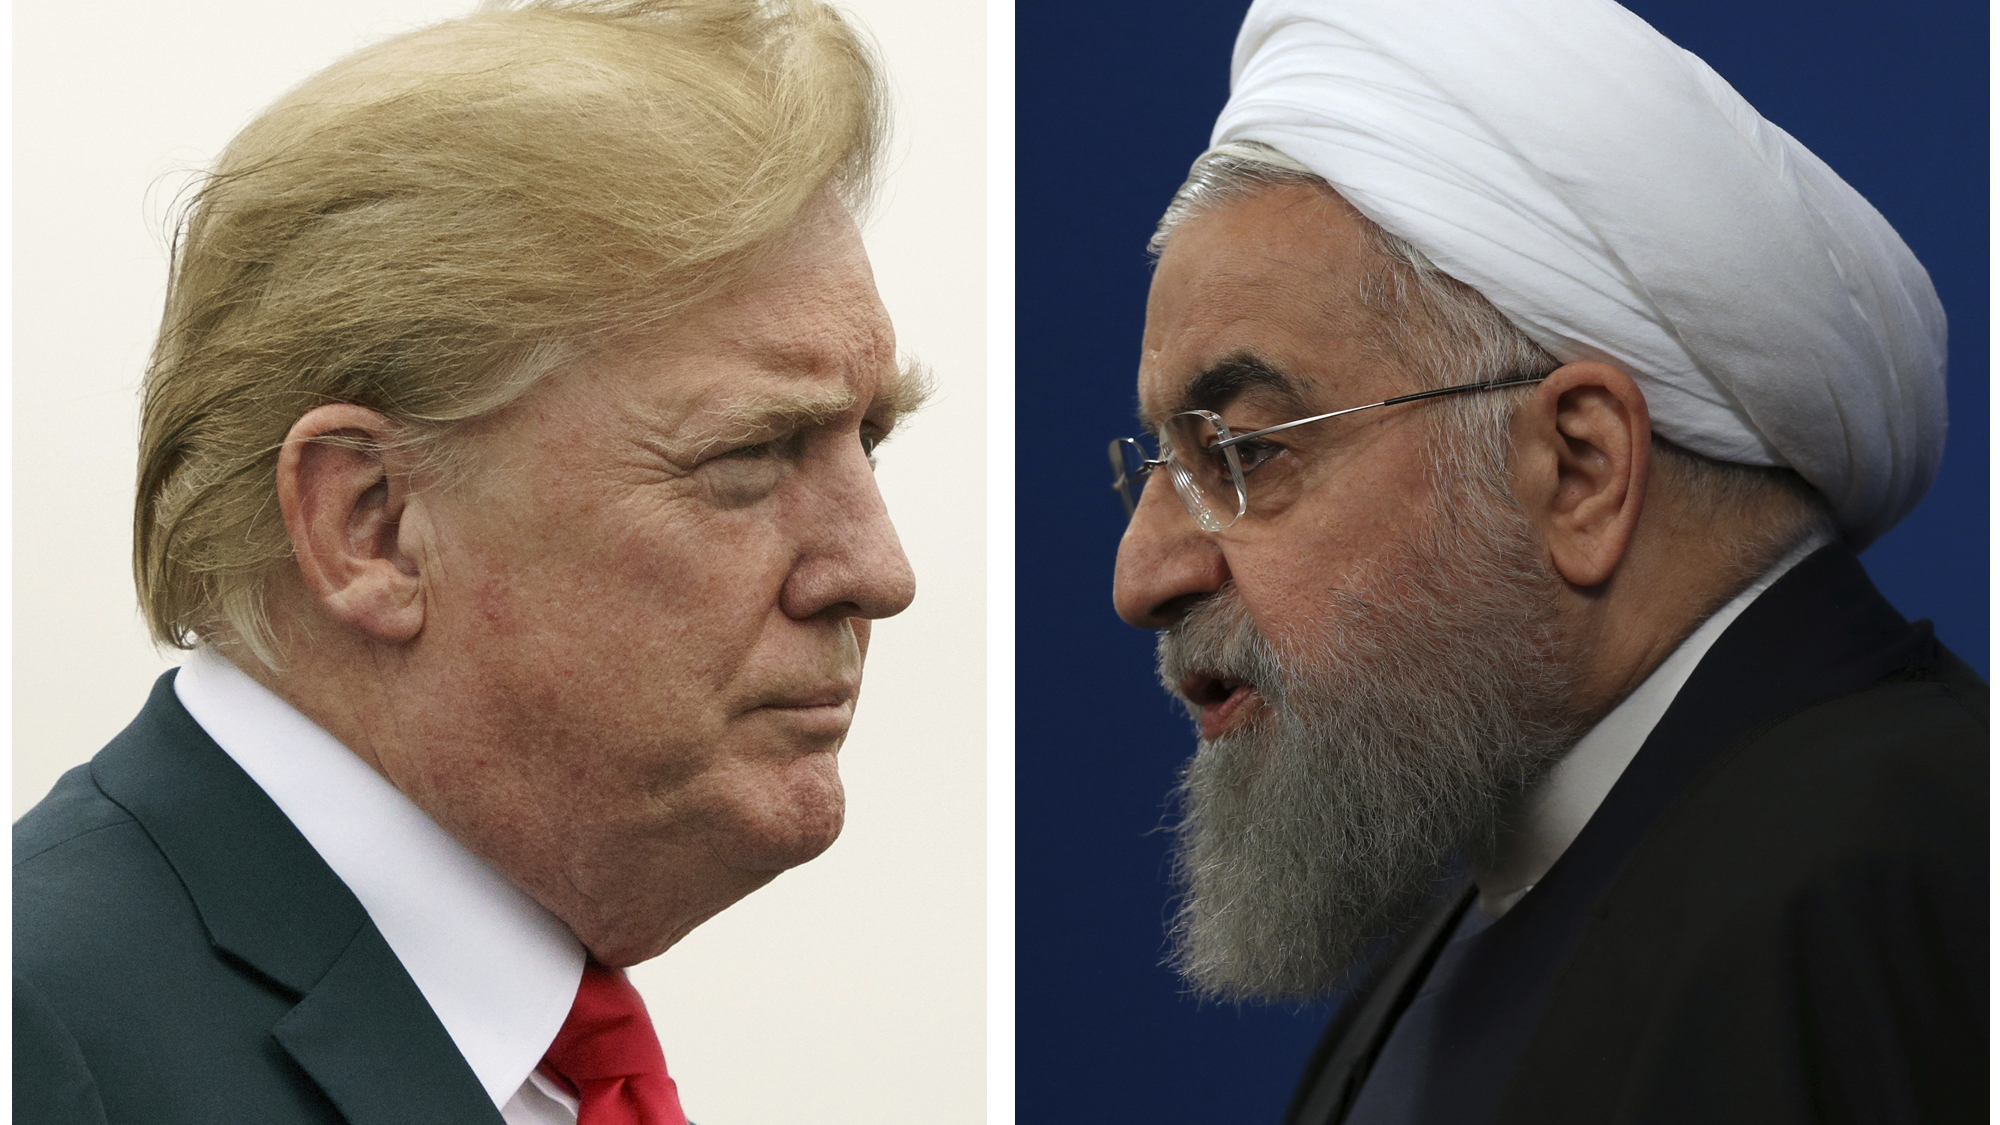 Iran tells Trump he's launched 'PSYCHOLOGICAL WARFARE' and will never abandon beliefs